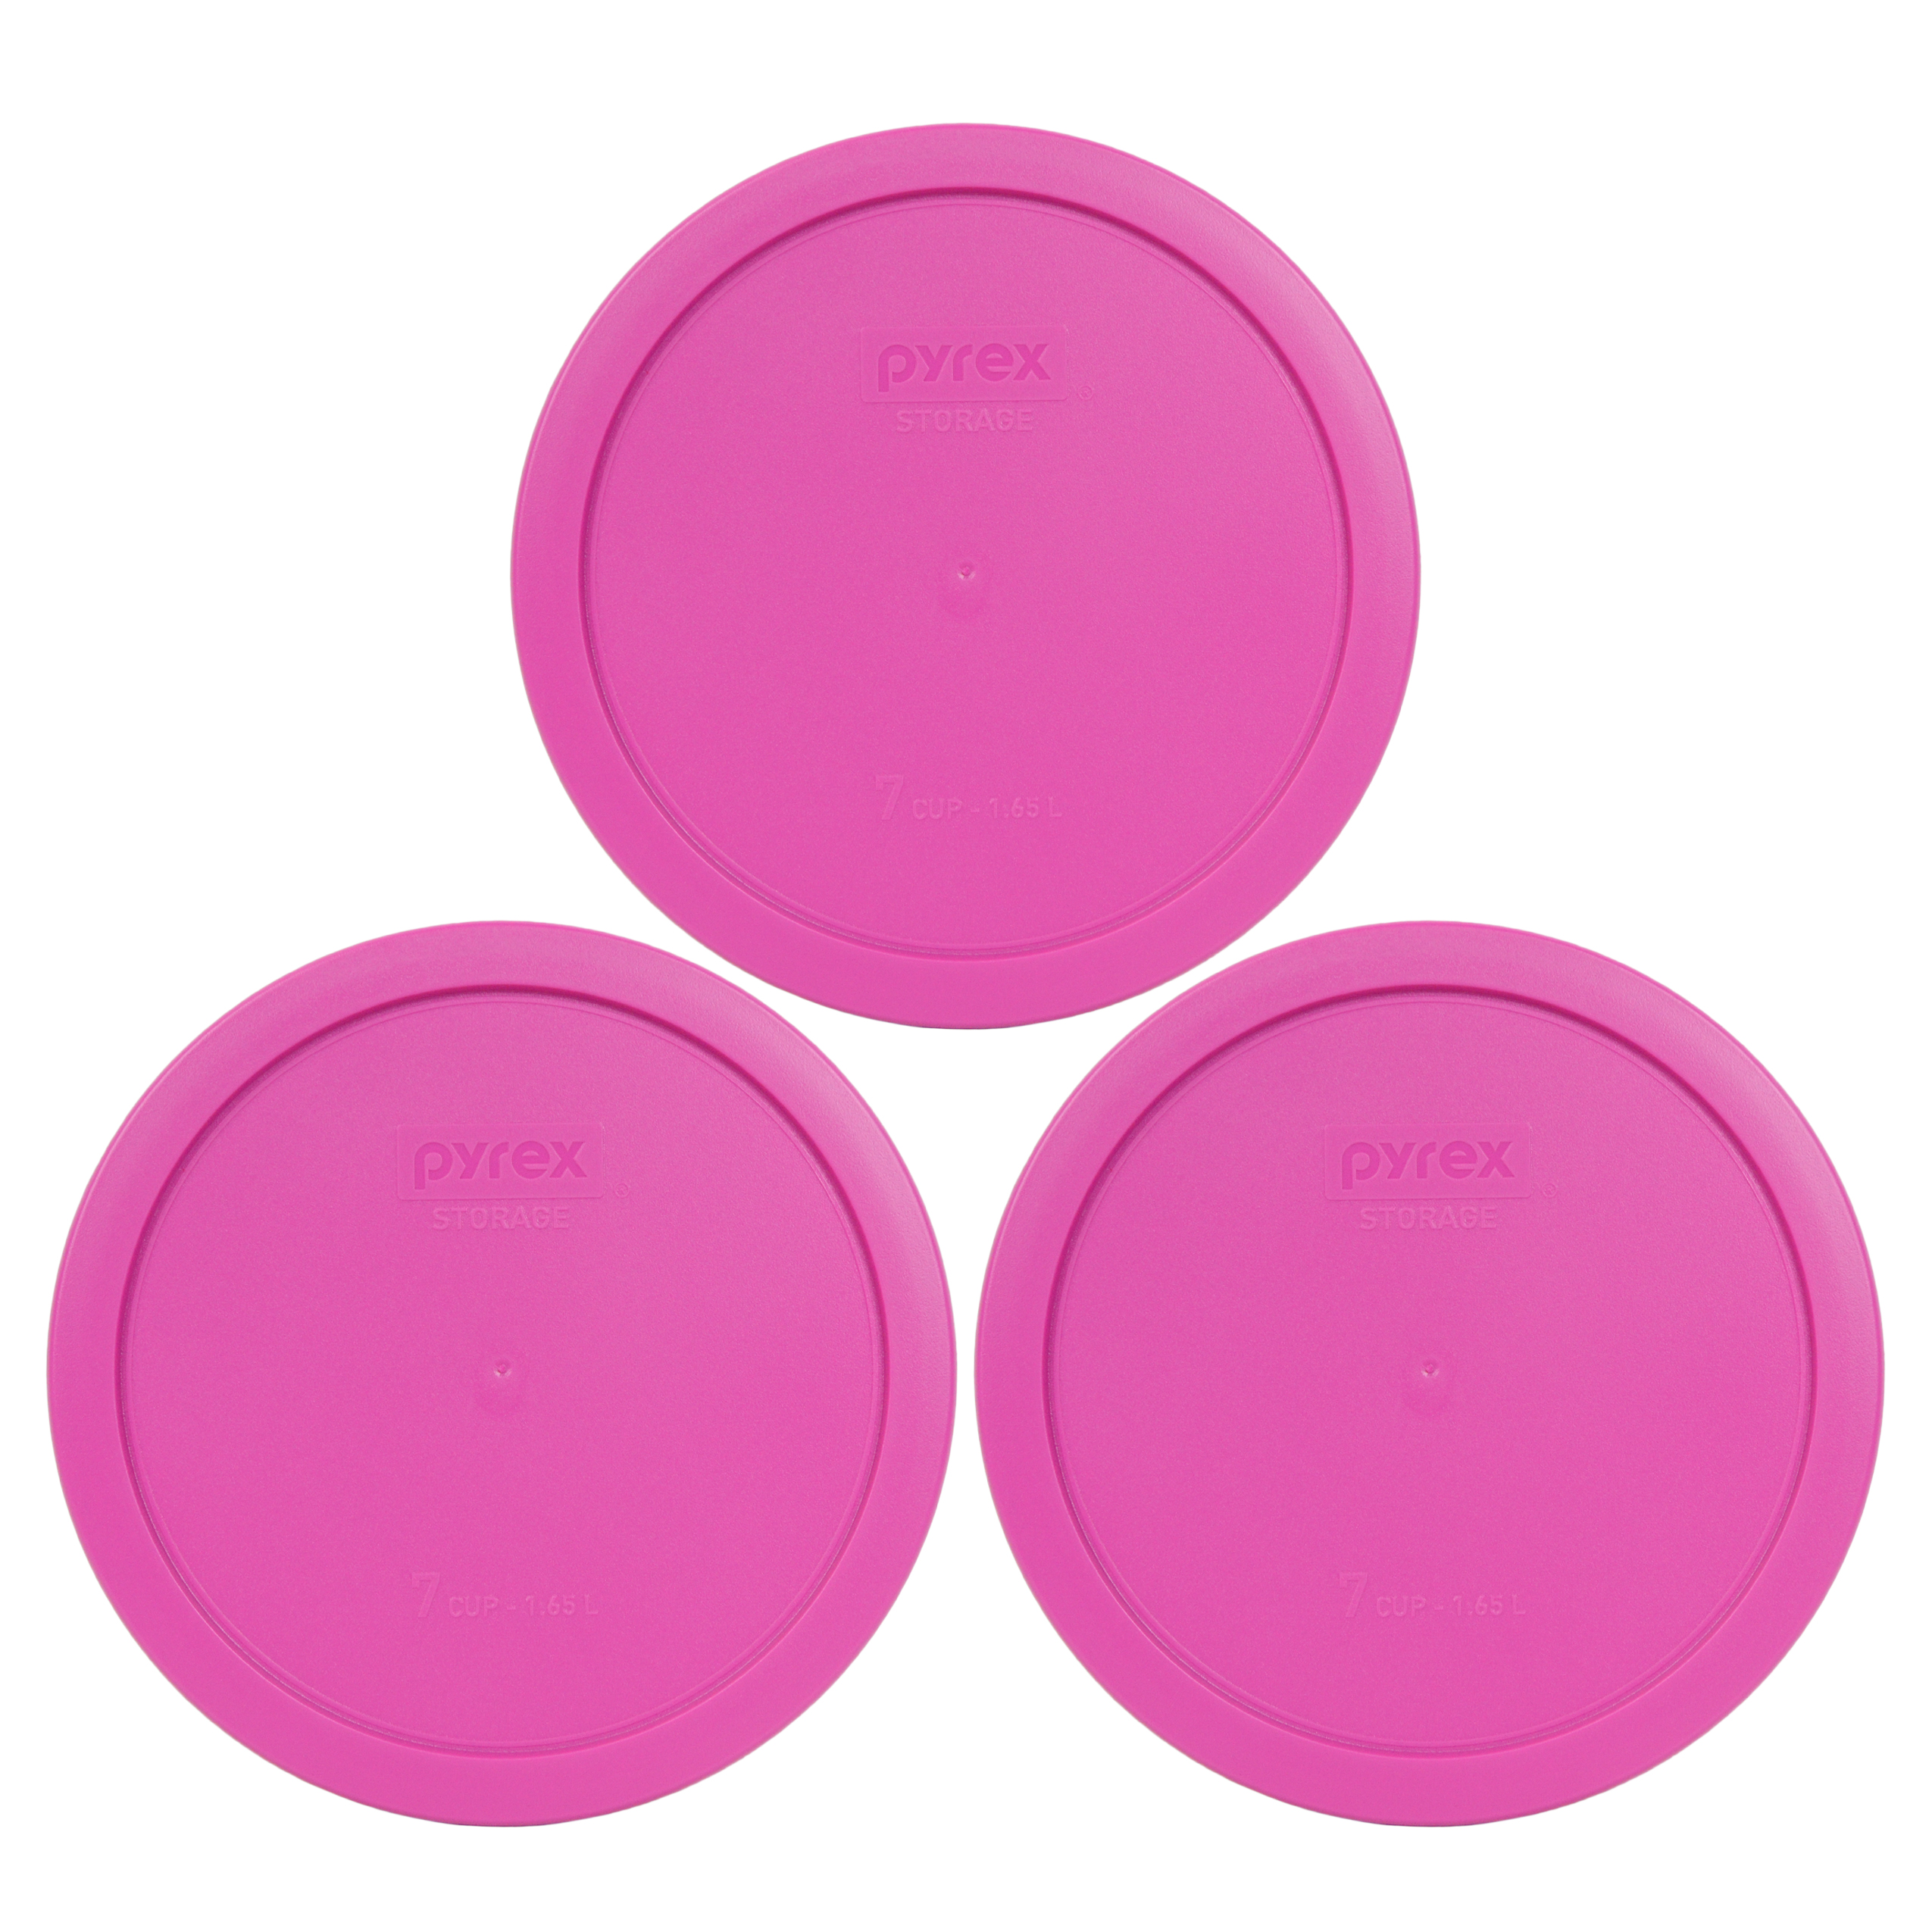 Pyrex Replacement Lid 7402-PC 7-Cup Pink Round Cover (3-Pack) for Pyrex 7402 Bowl (Sold Separately)